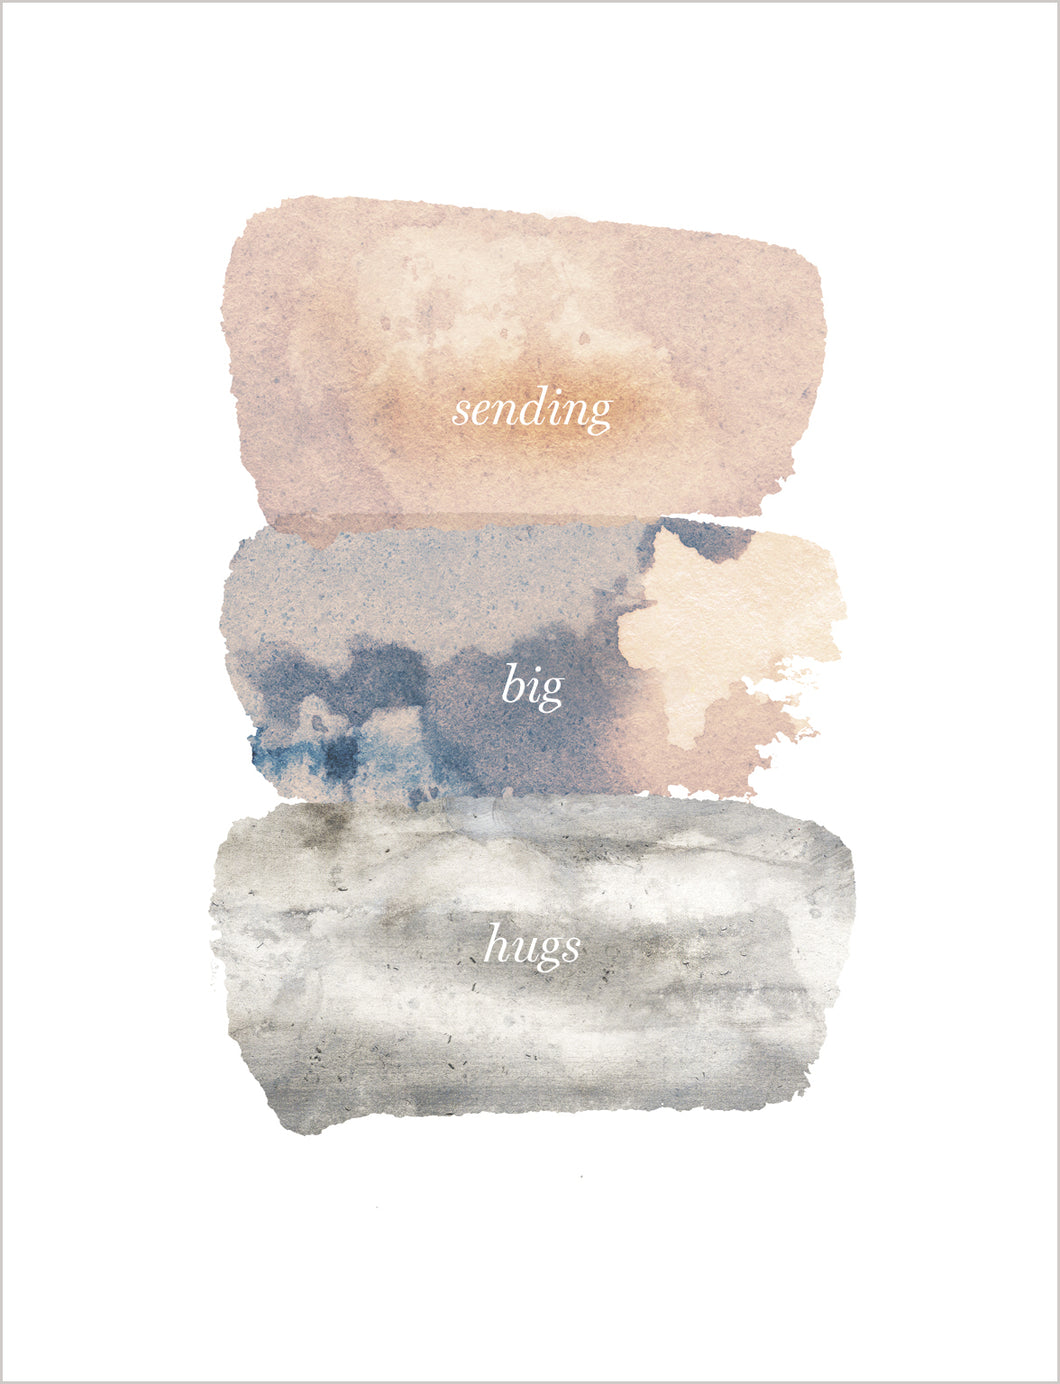 Sympathy Card - Sending Big Hugs